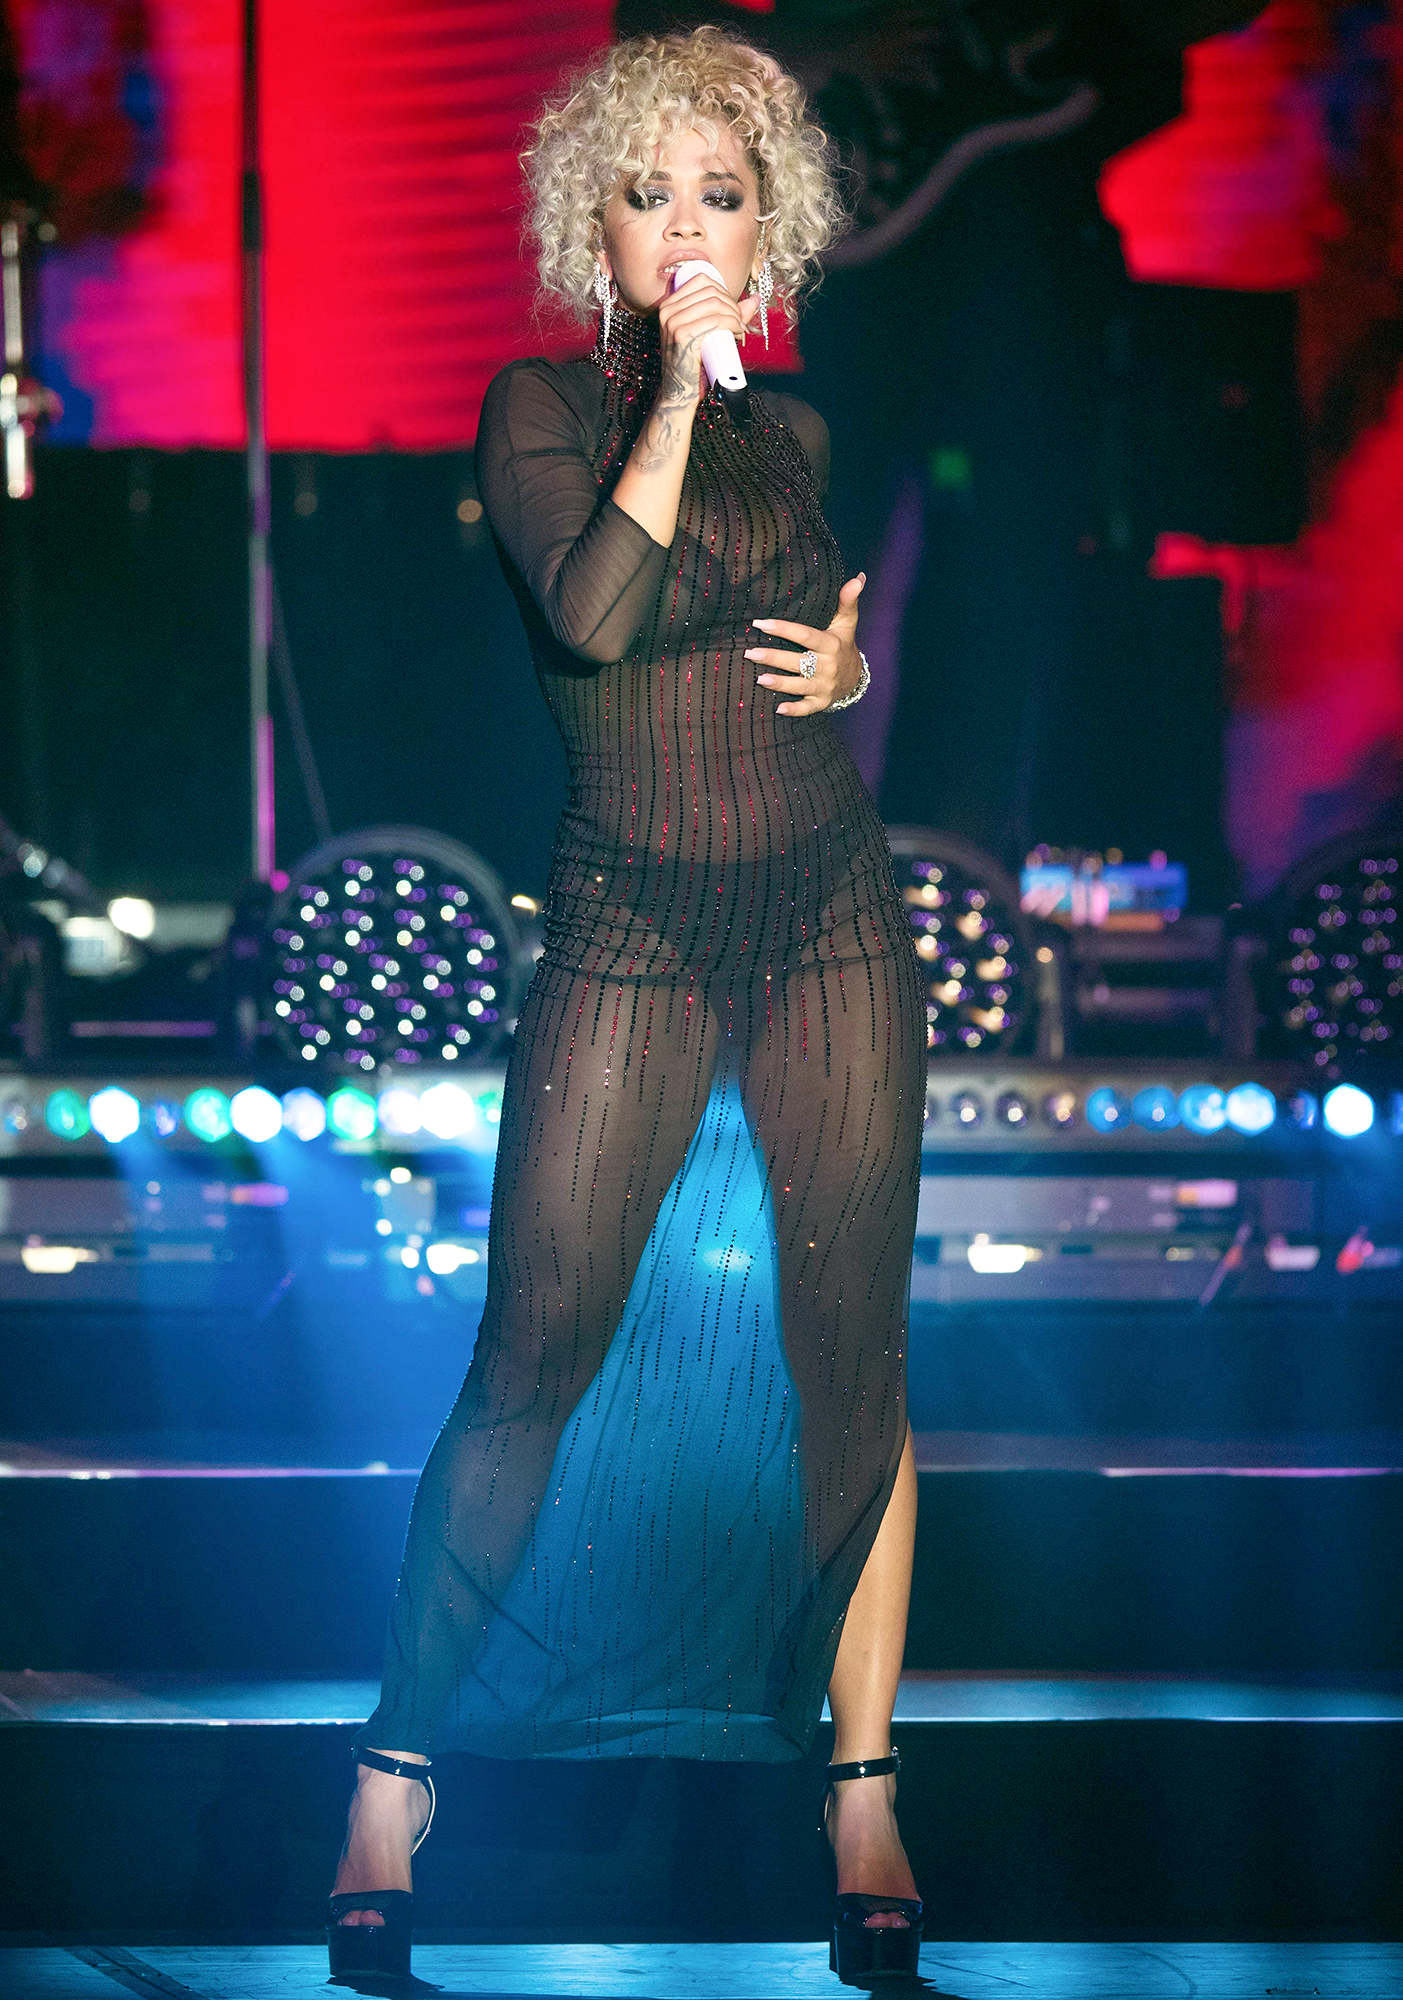 Rita Ora Delivers Unforgettable Performance In Sexy Sheer Black Ensemble USA ONLY